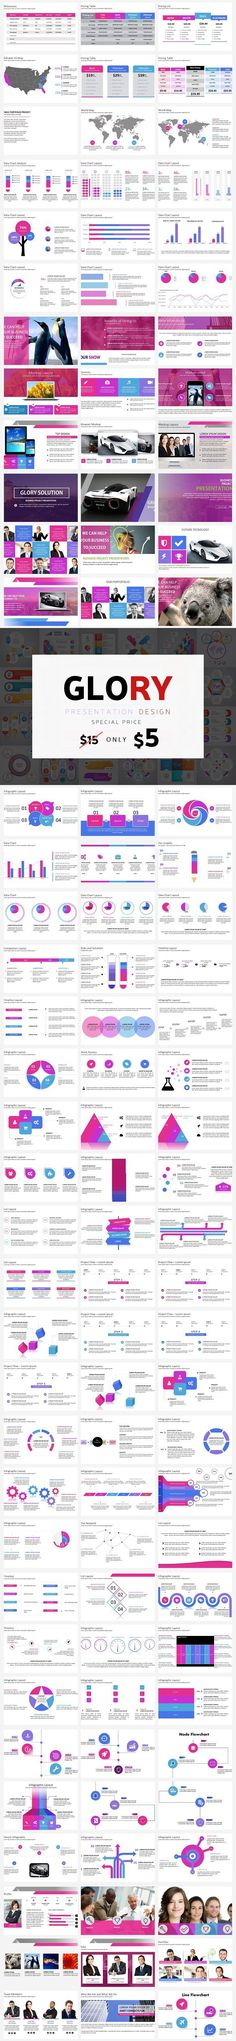 GLORY - POWERPOINT TEMPLATES Make your design of presentation with our best template. Any features can be make your simple and good project presentation. Project Presentation, Corporate Presentation, Presentation Design, Presentation Templates, Icon Files, Ppt Design, Best Templates, Vector Icons, Fun Projects